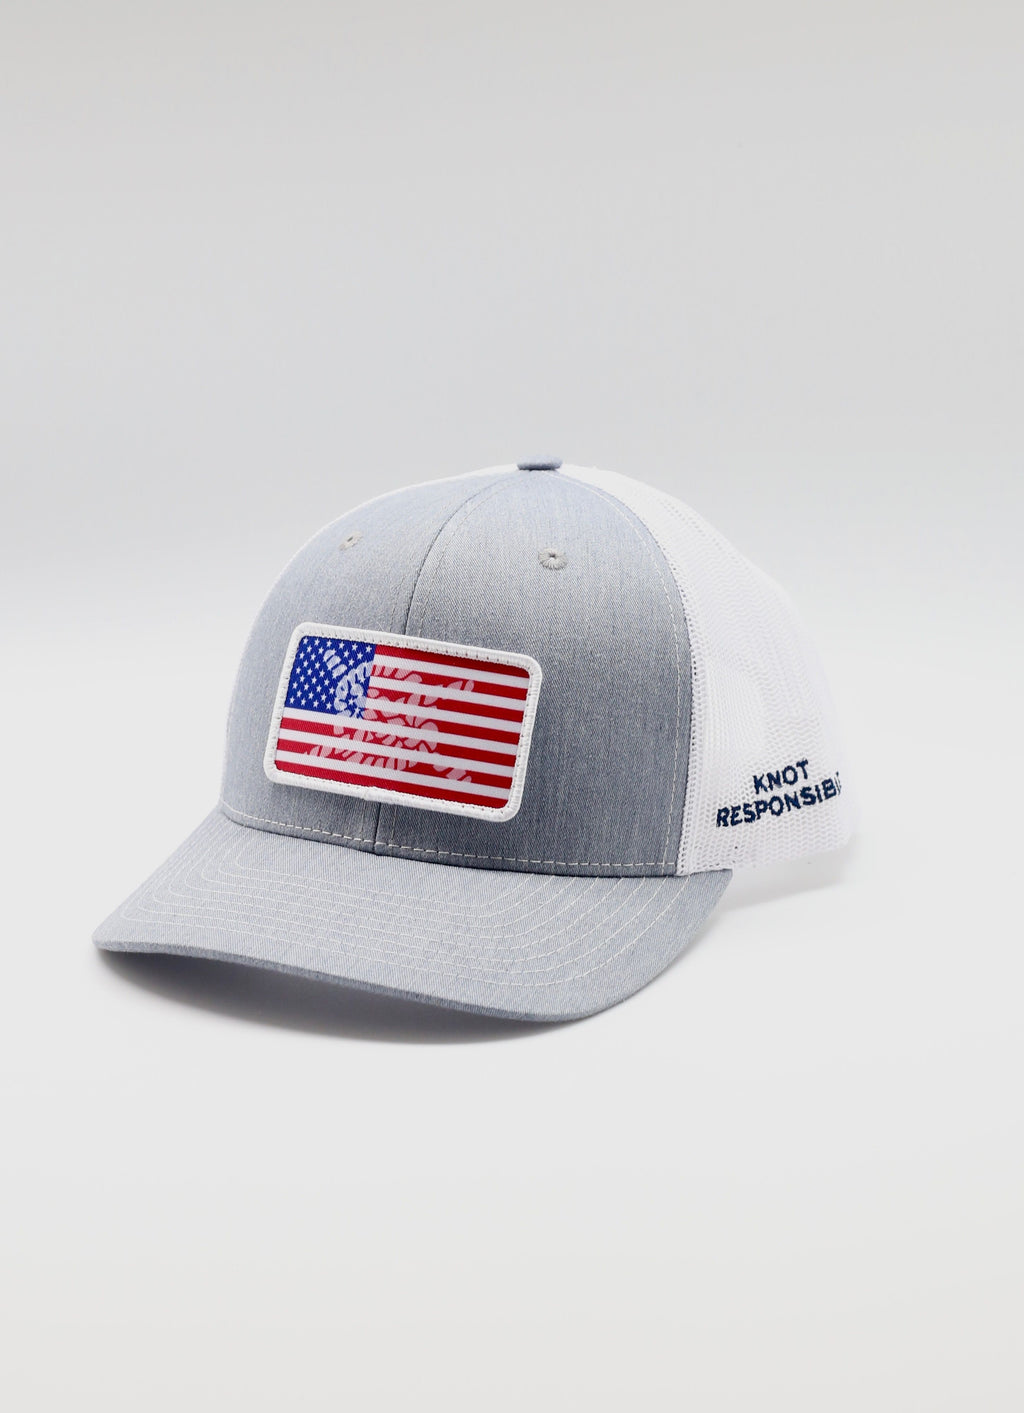 Limited Edition USA Patch Trucker Hat- Grey/White